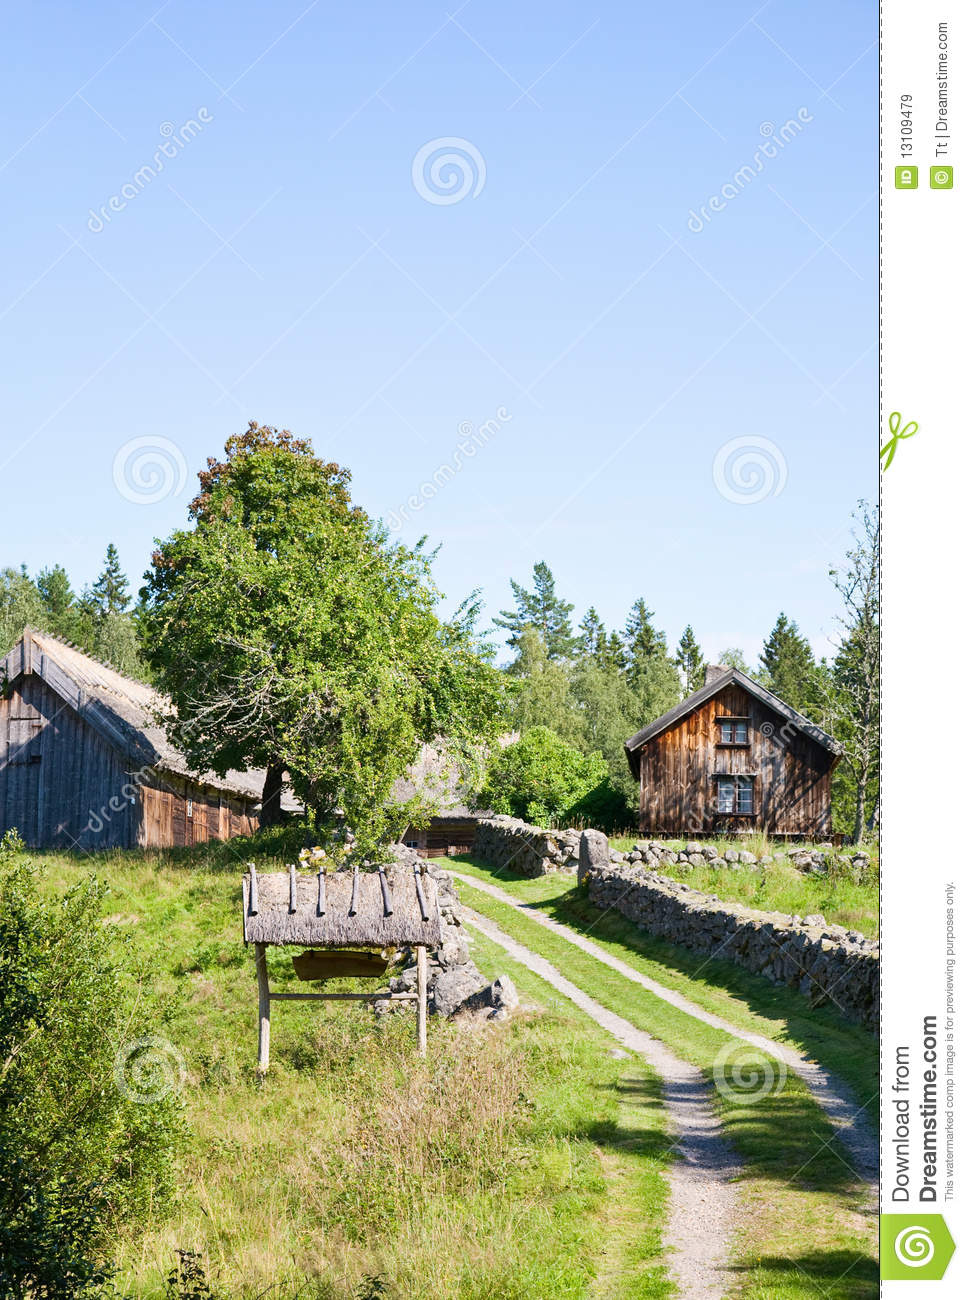 Landscaping Around An Old Farmhouse : Old farm landscape royalty free stock images image